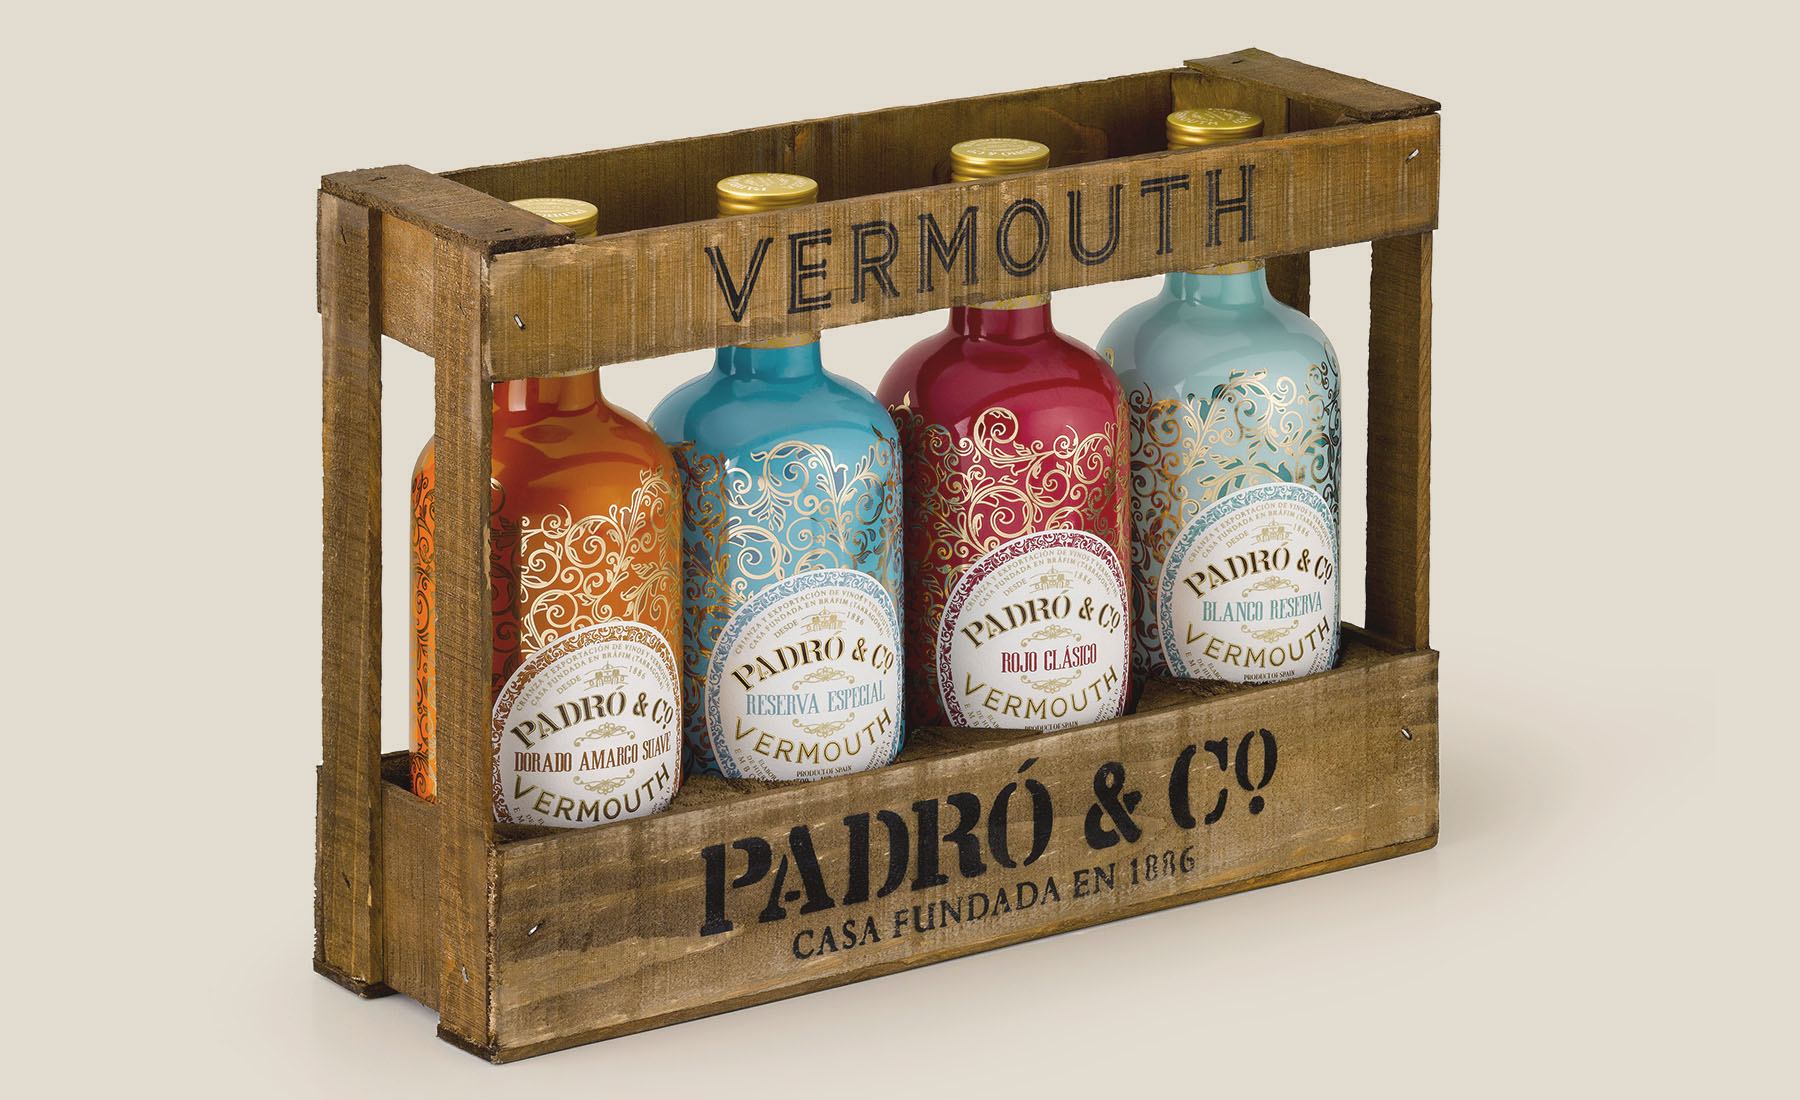 Vermouth Padró & Co.